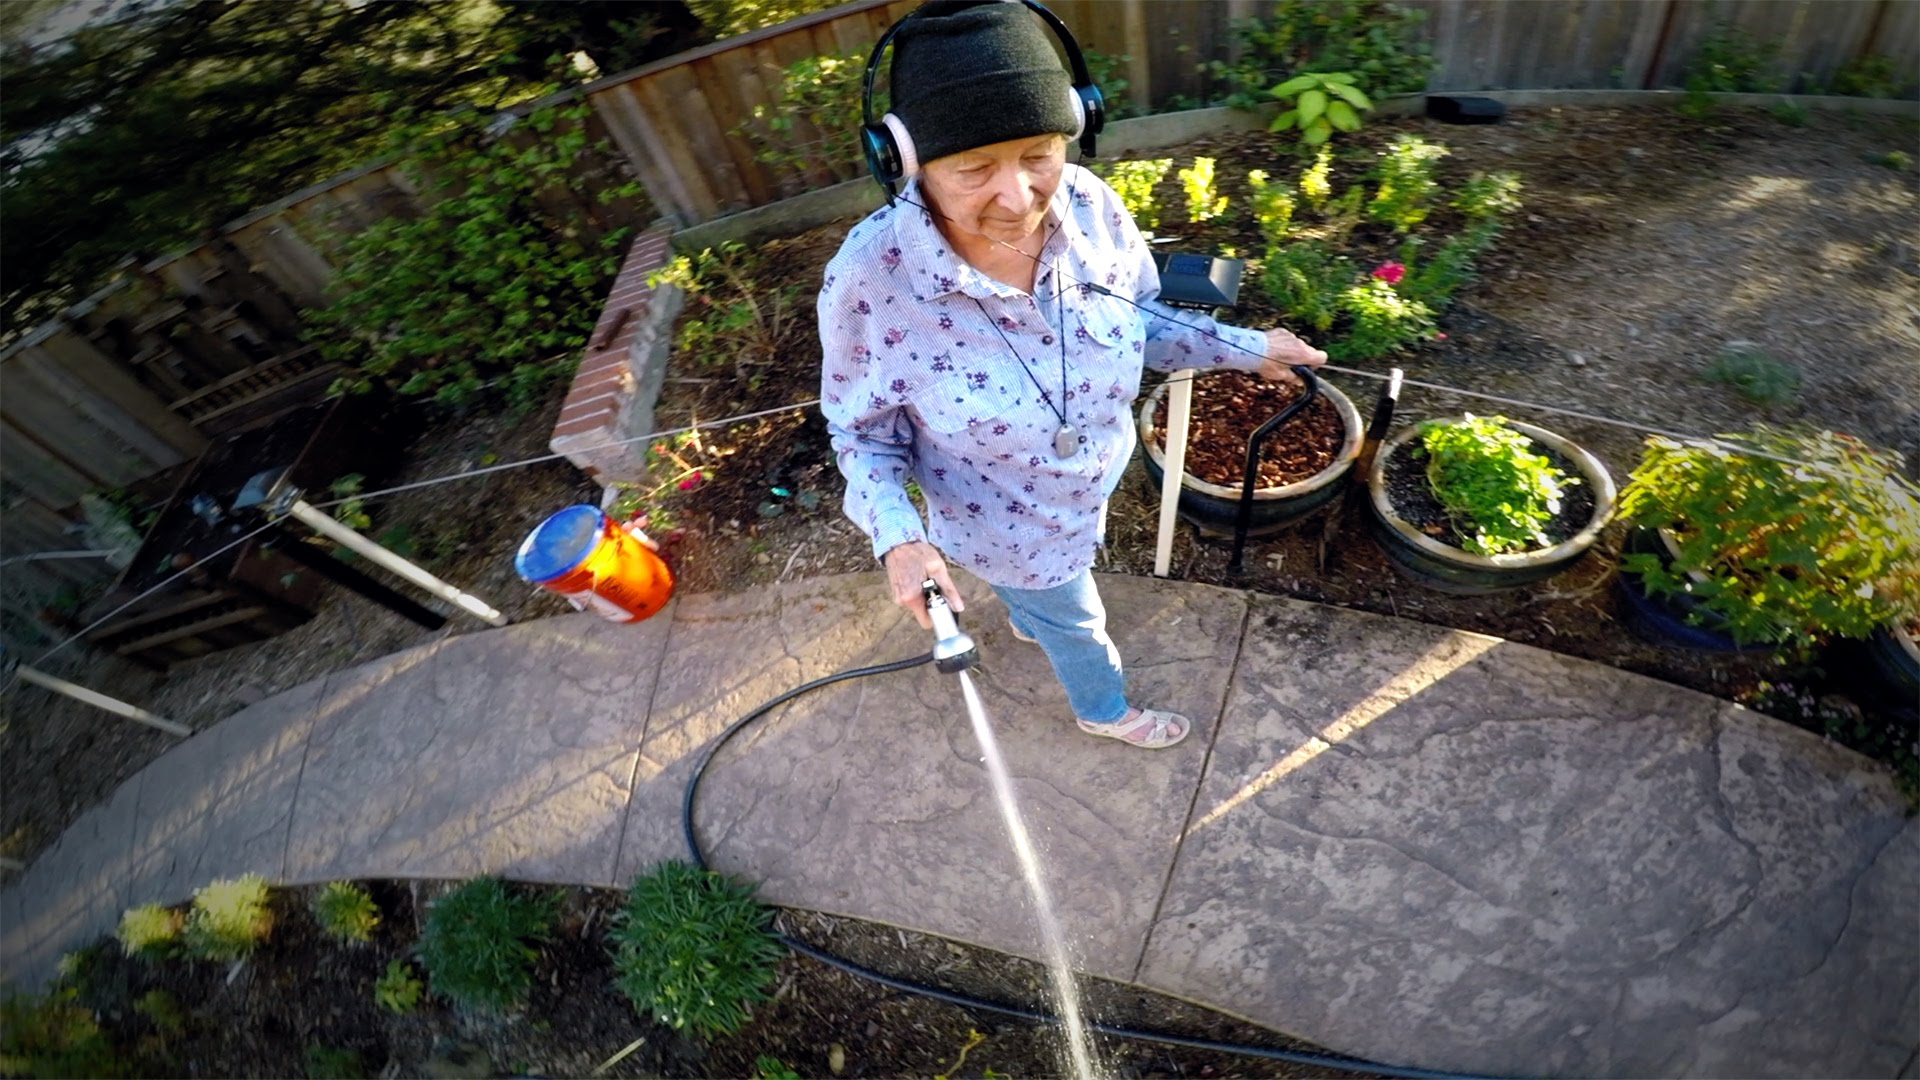 Grandma Flies A Drone